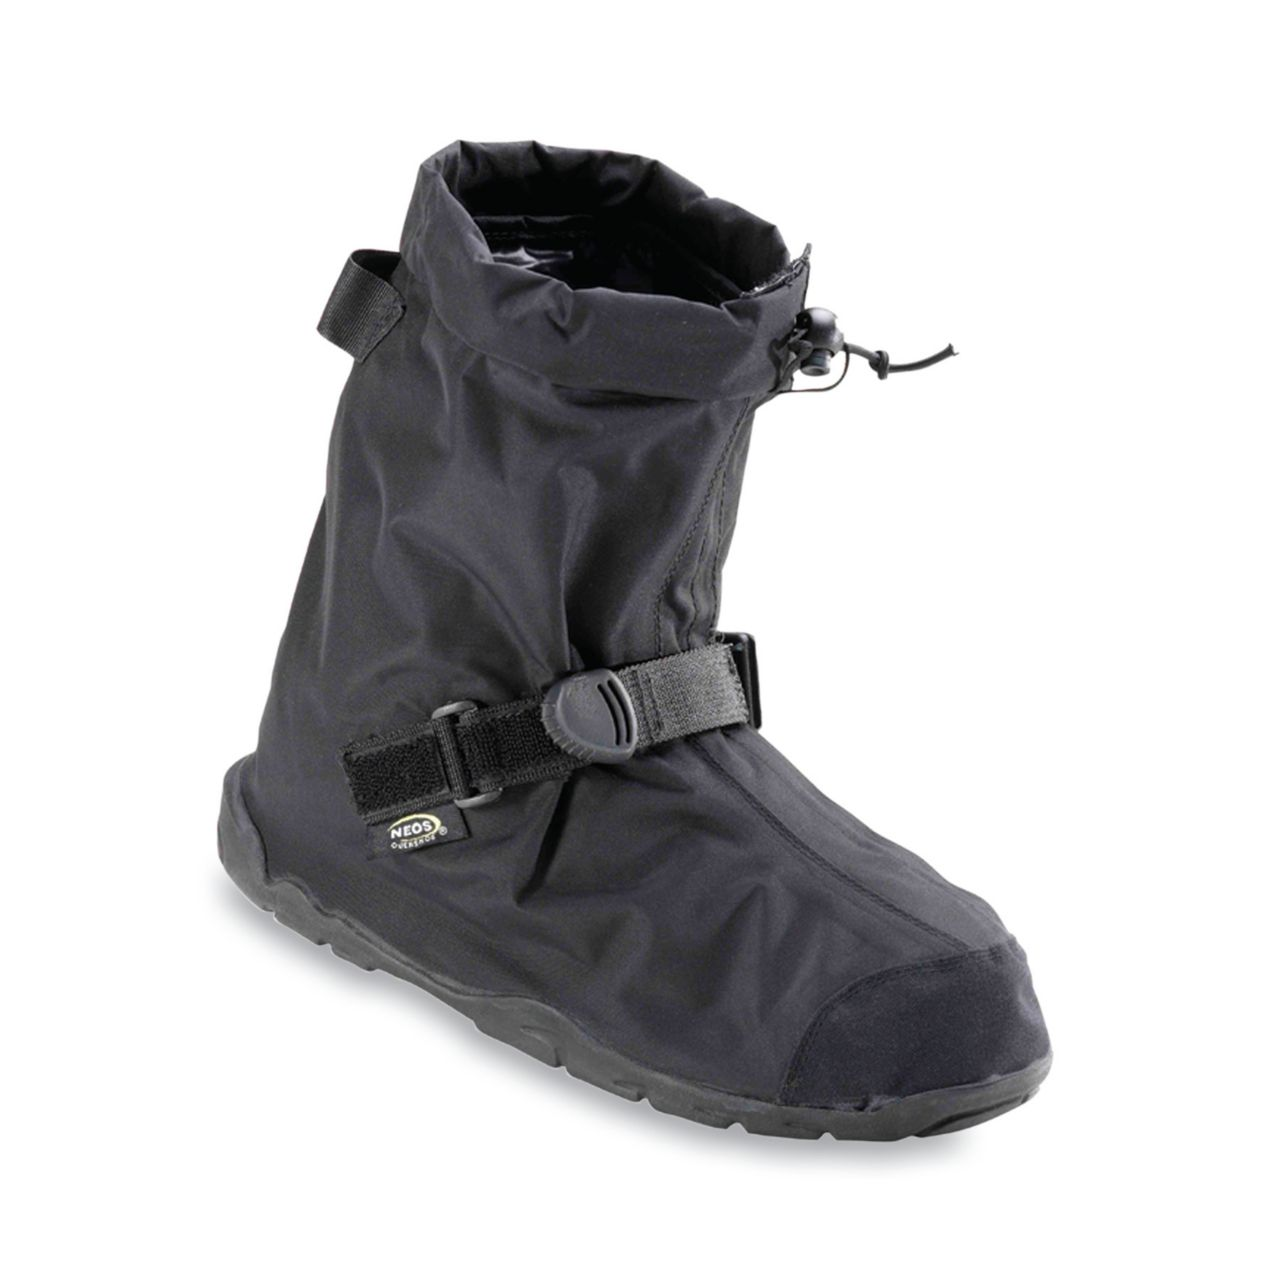 HS_neos_villager_mid_overshoe_neos_vis1